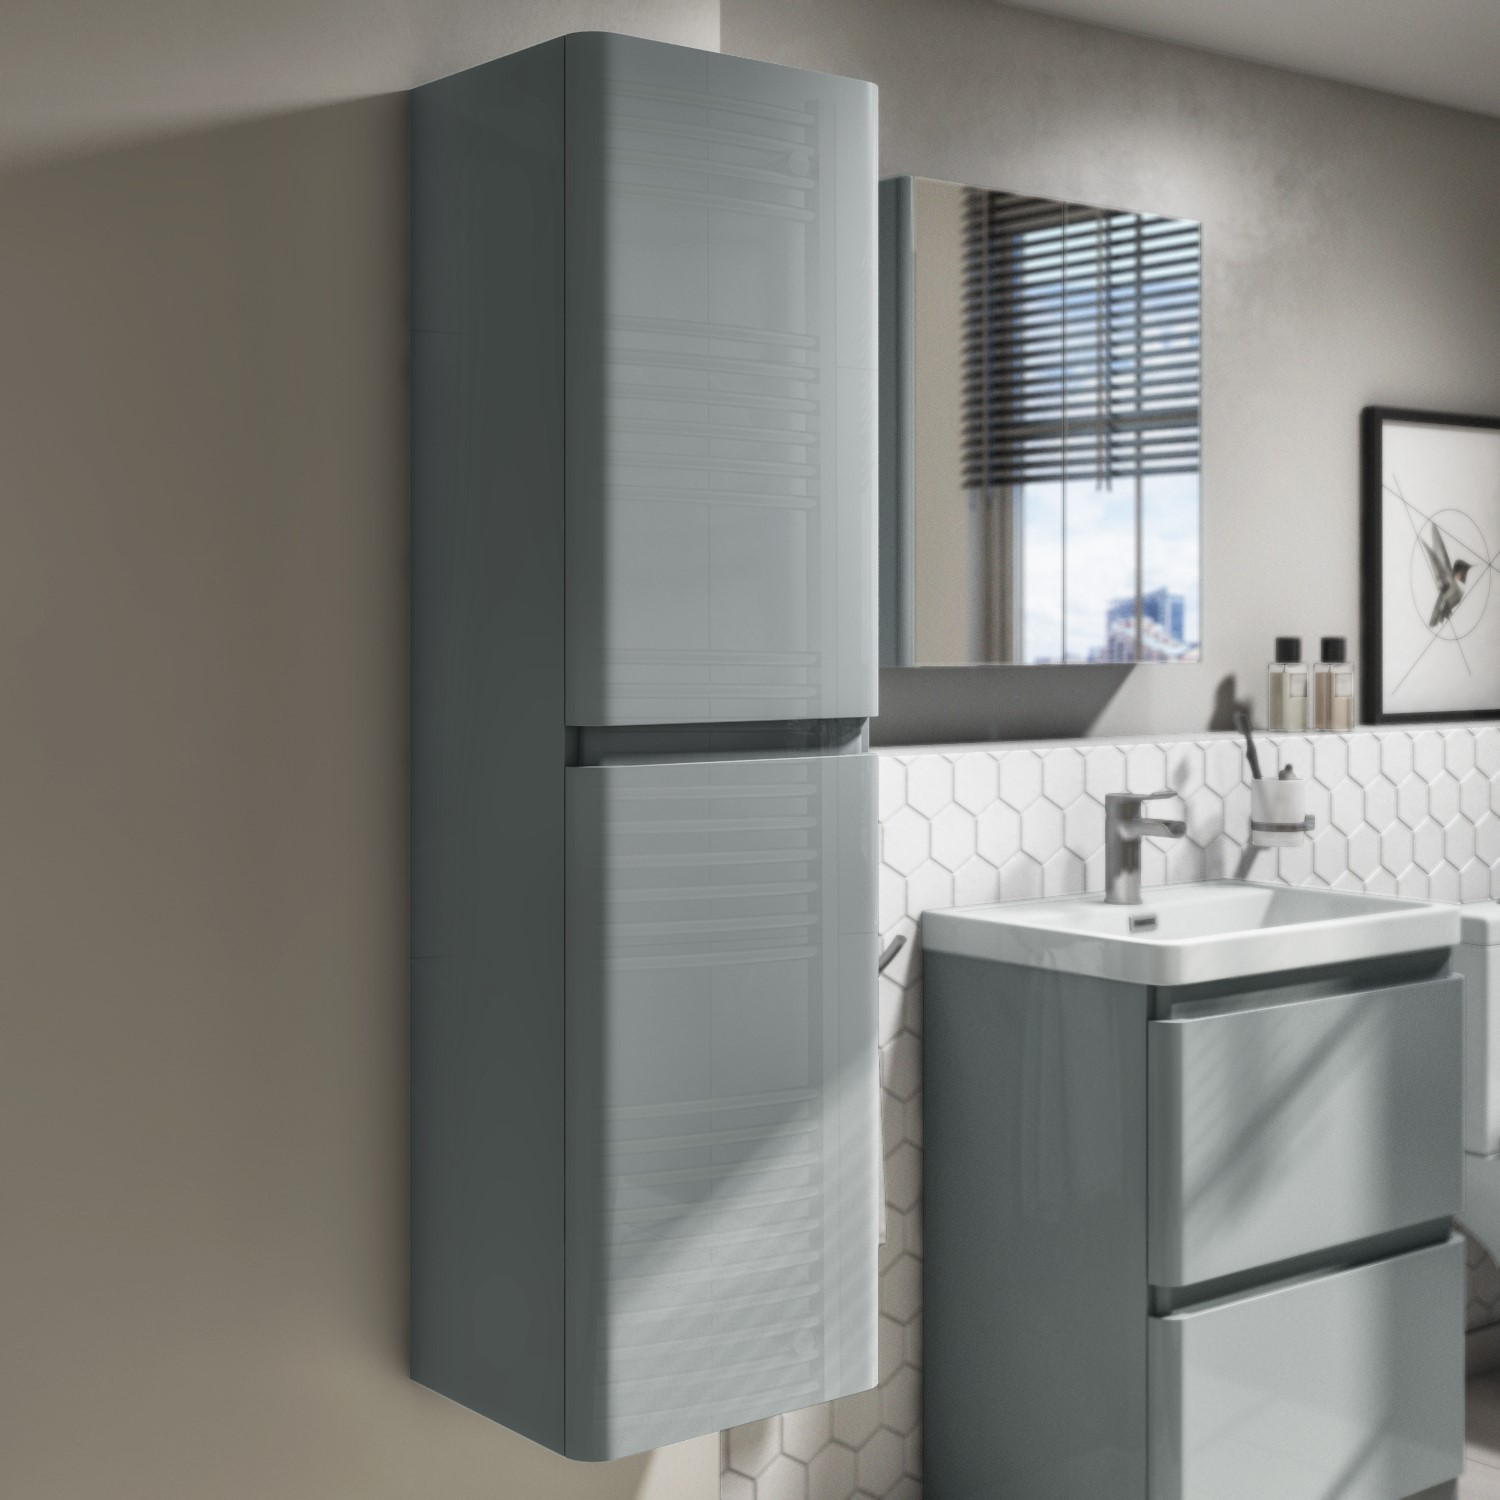 Picture of: Cabinets Cupboards Grey High Gloss Bathroom Cabinet Wall Mounted Storage Cupboard Furniture Unit Home Furniture Diy Tallergrafico Com Uy